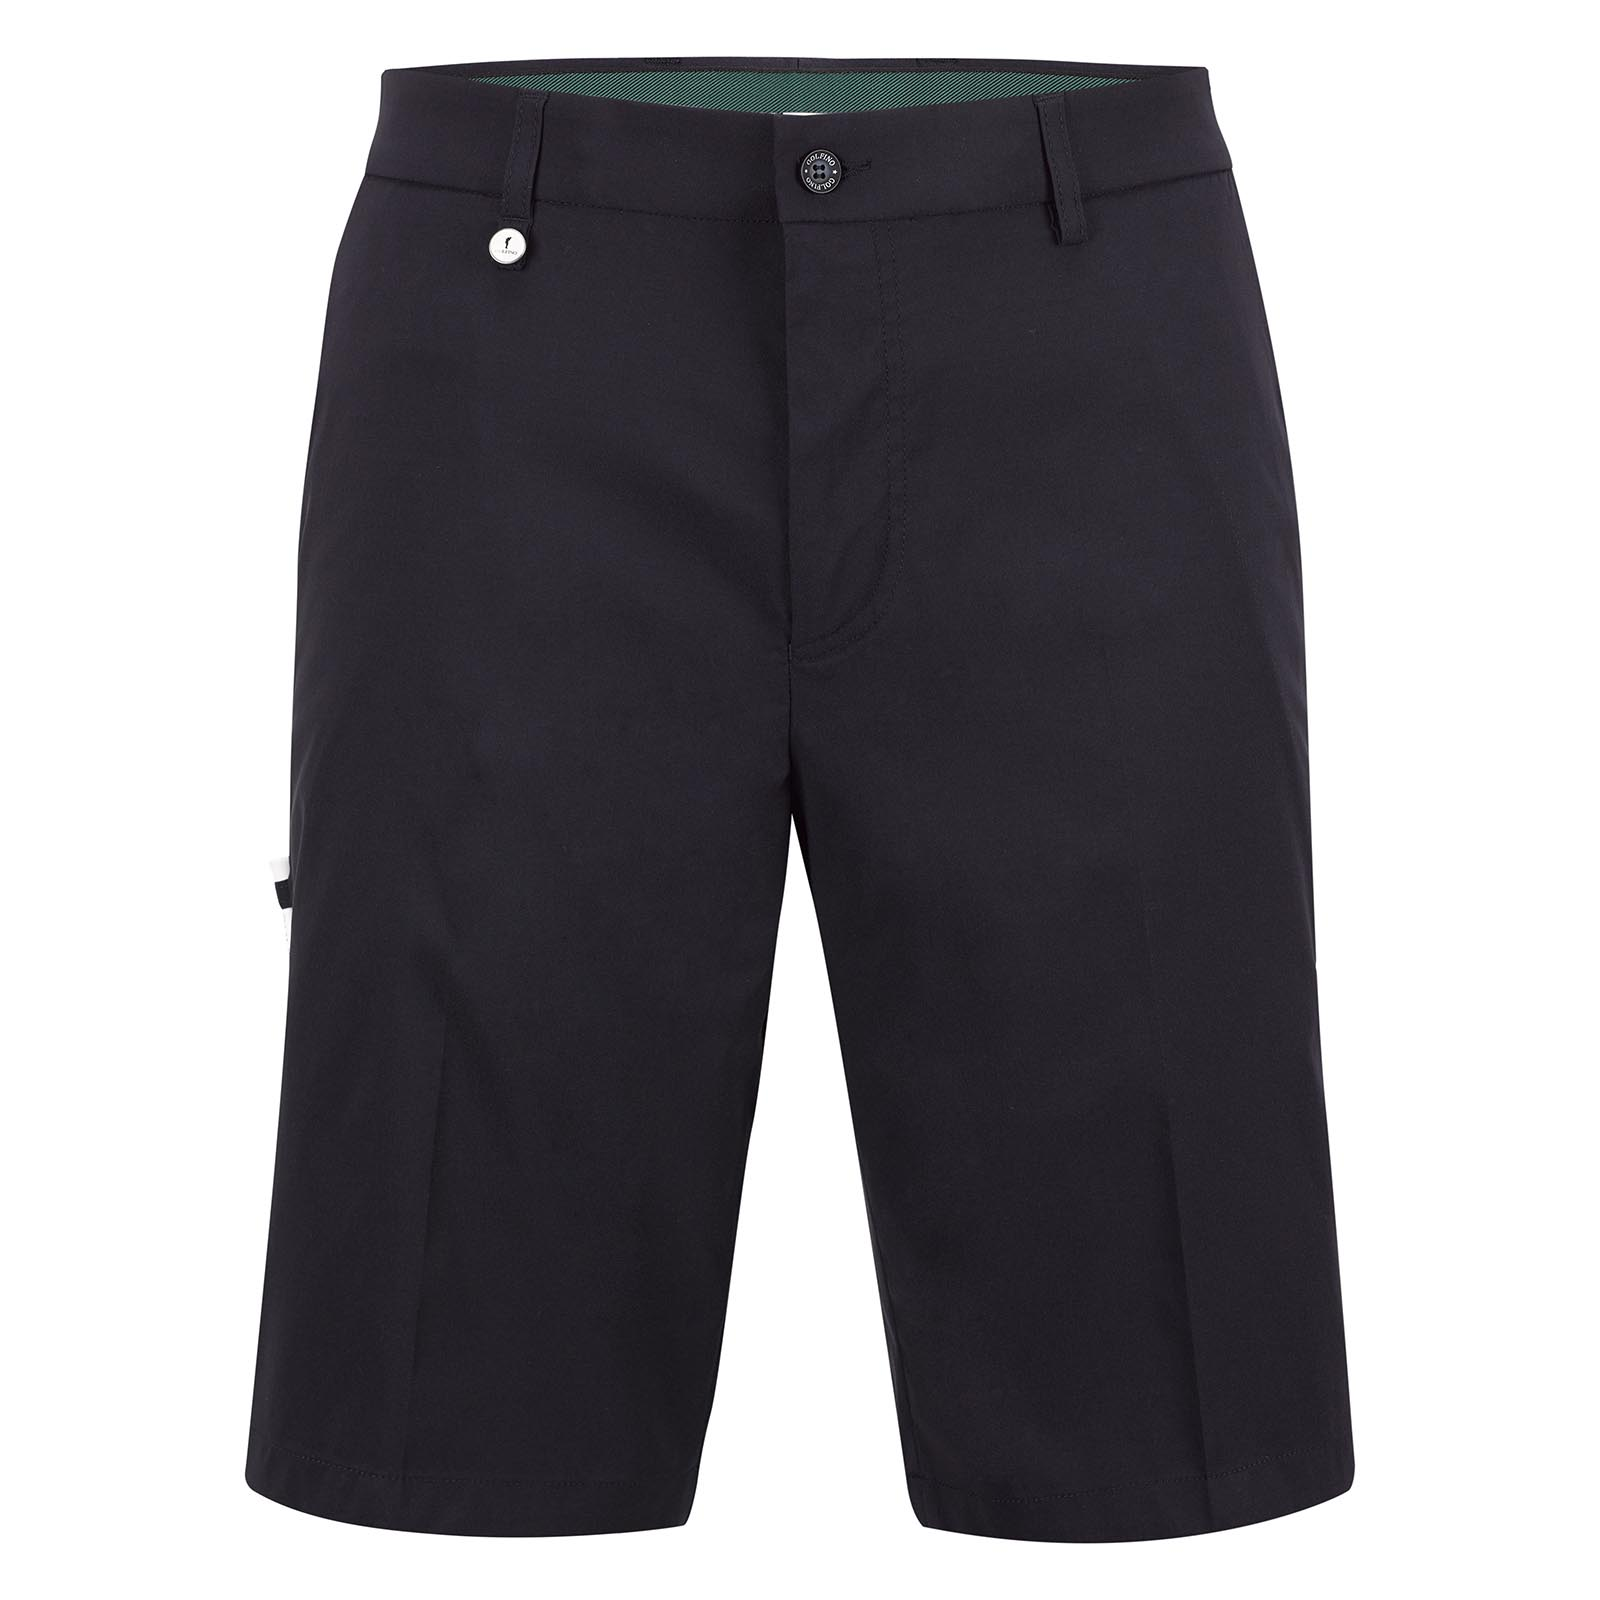 Men's Bermuda shorts with sun protection function, made from stretch material